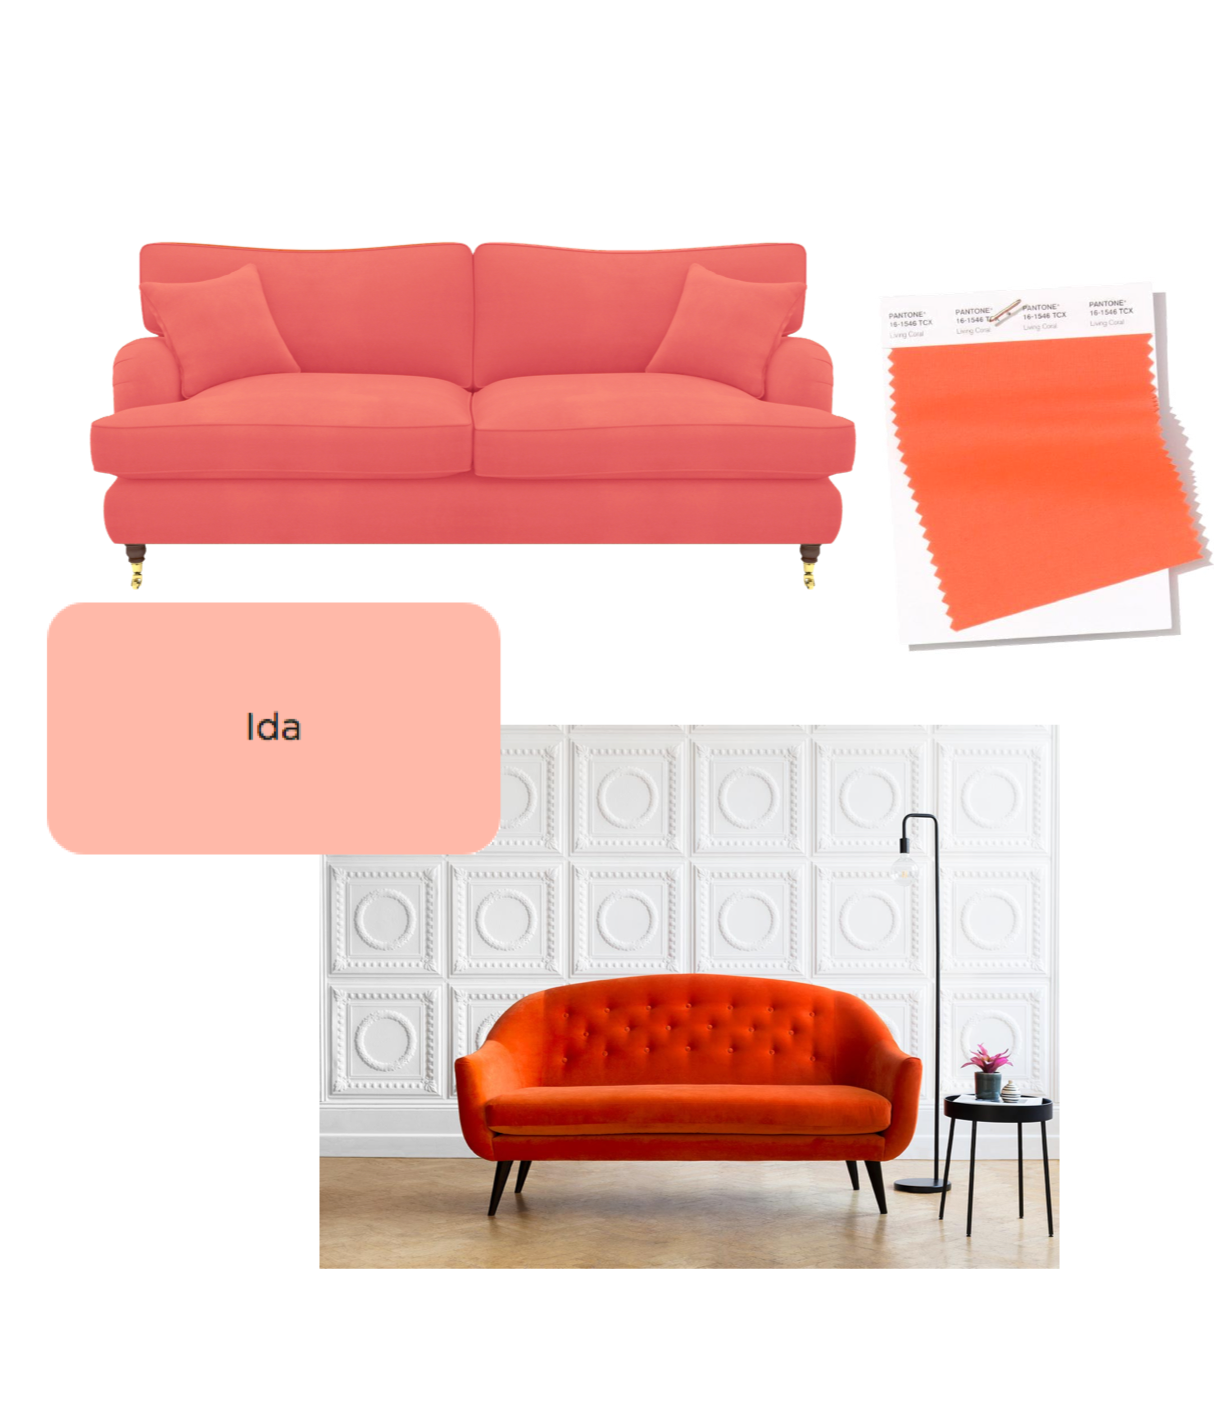 Pantone's Coral By Stuff2019 Colour Of YearLiving Sofasamp; The W2IDYeE9H